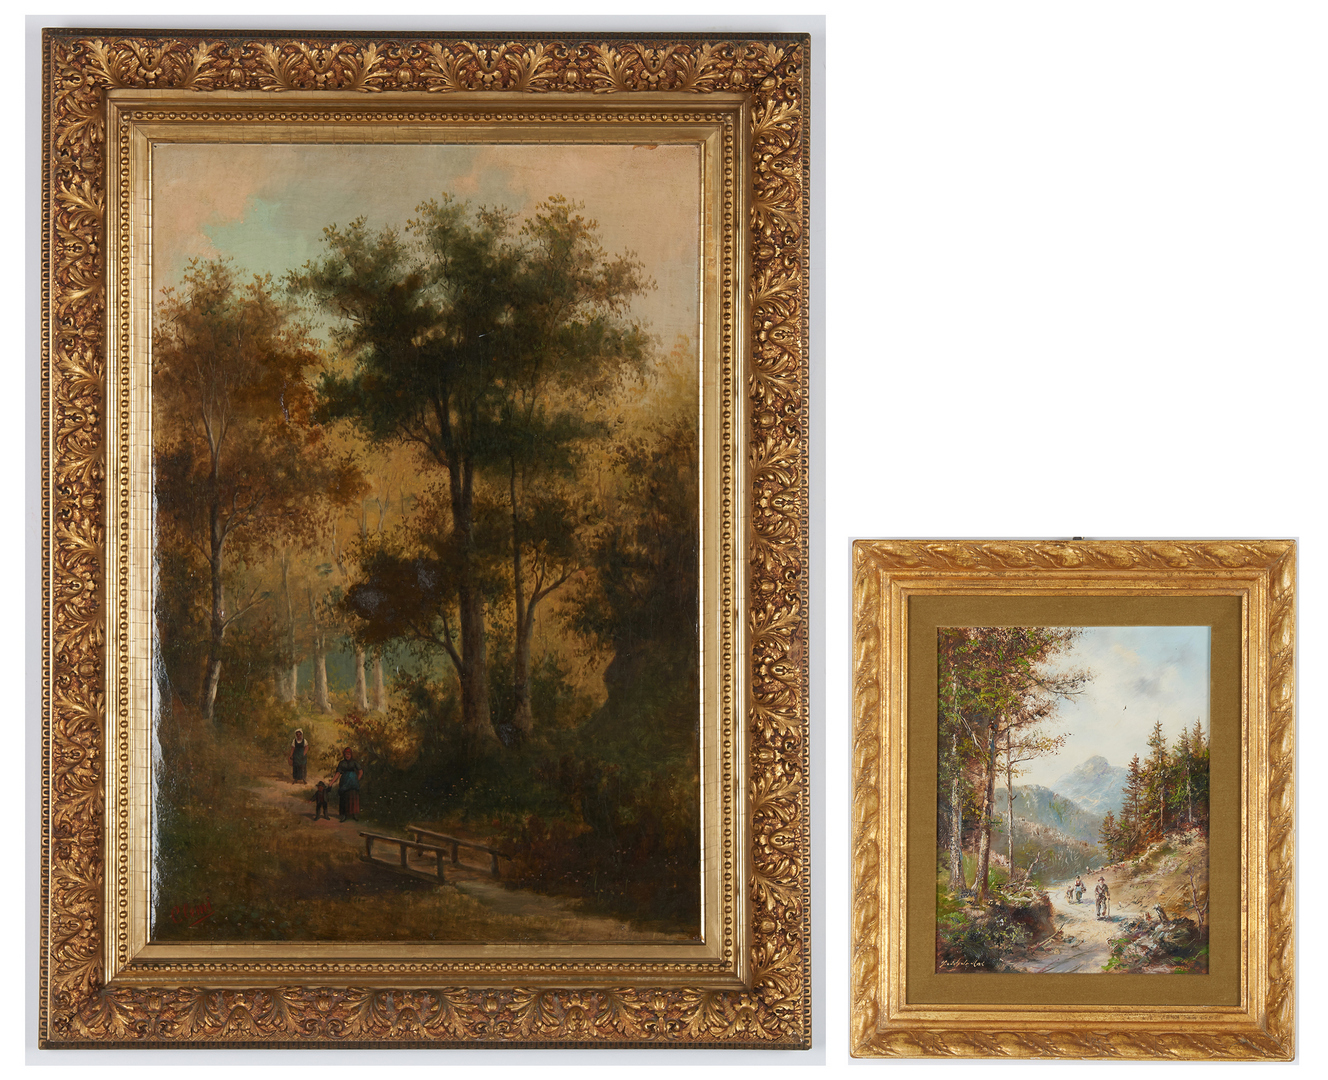 Lot 832: 2 European School Signed Oil Landscape Paintings